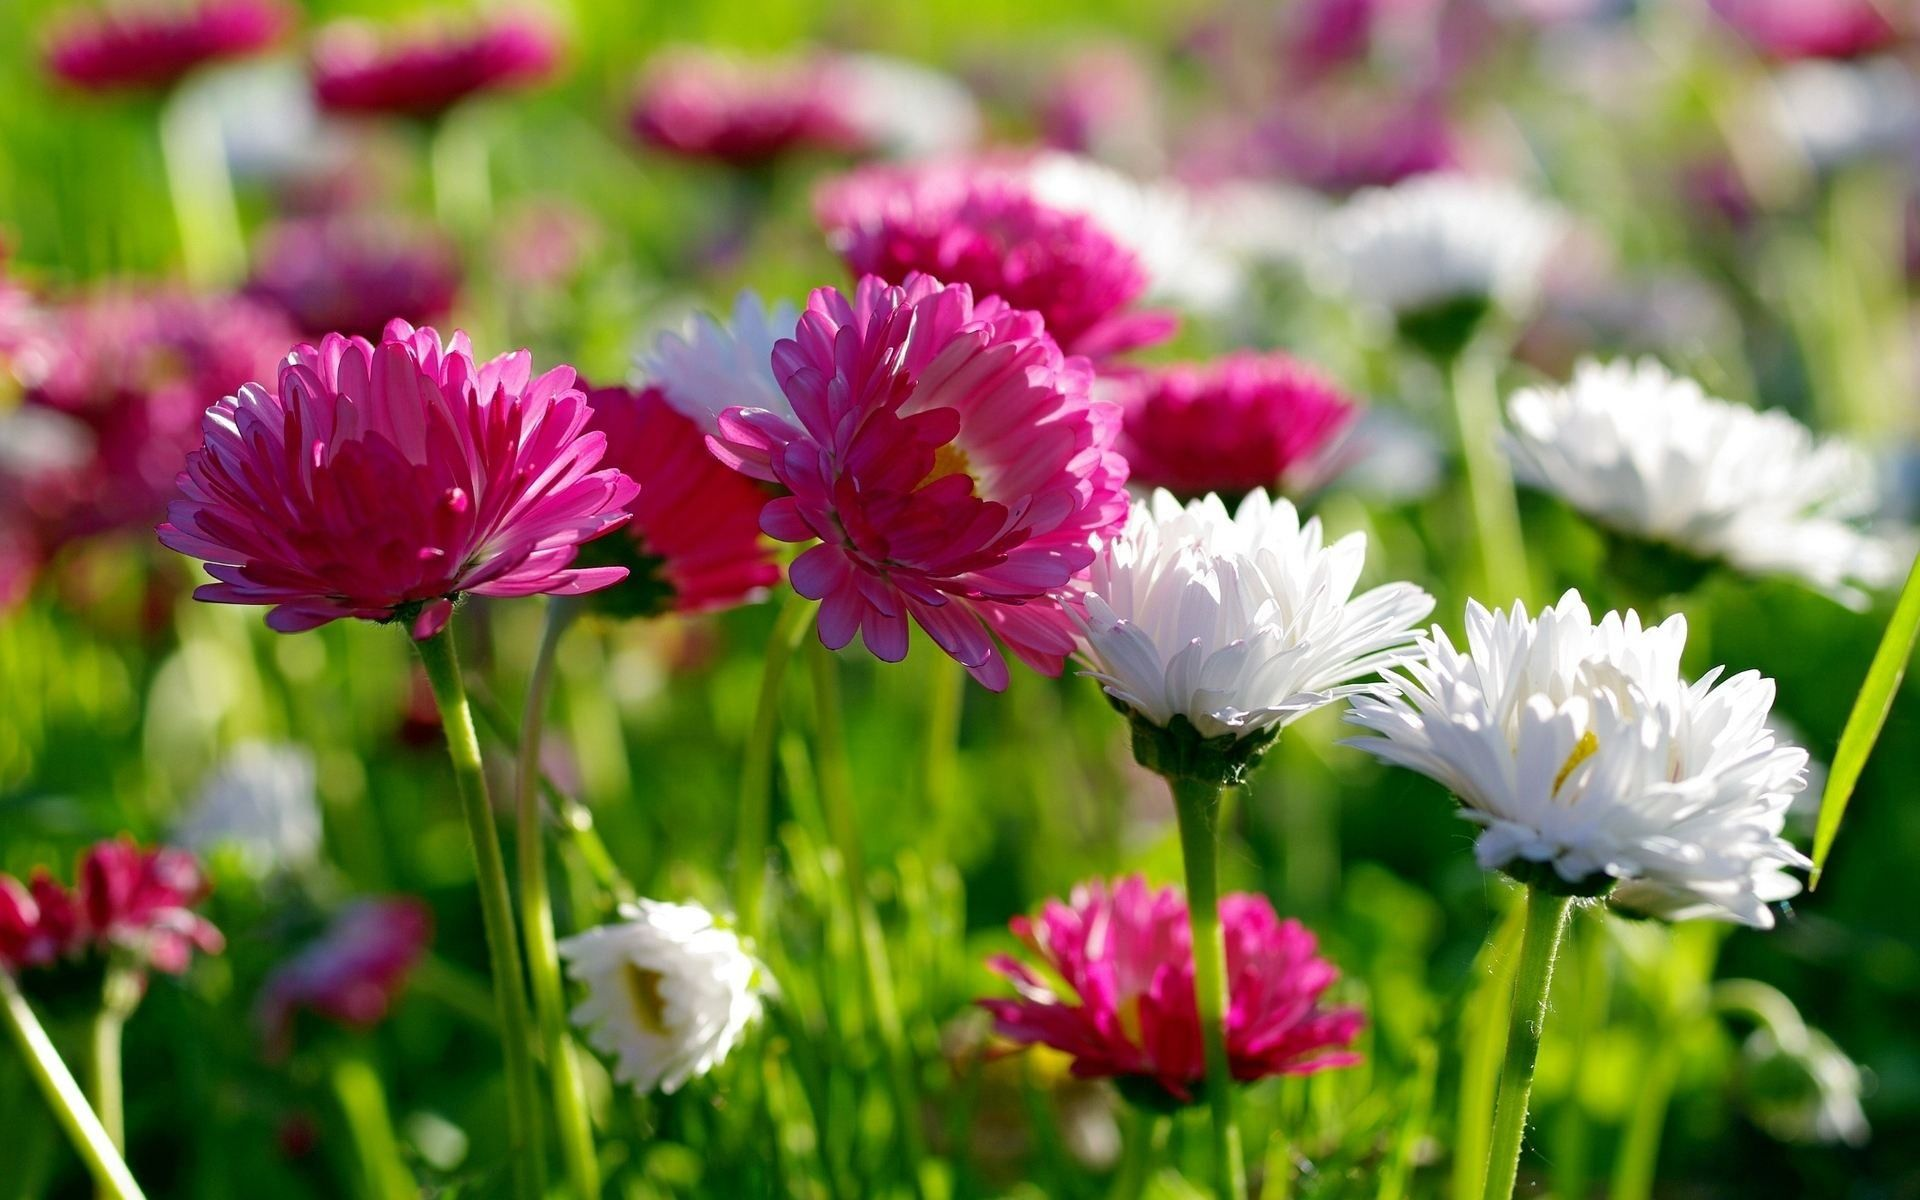 spring flowers New Spring Flowers wallpaper download 1920x1200